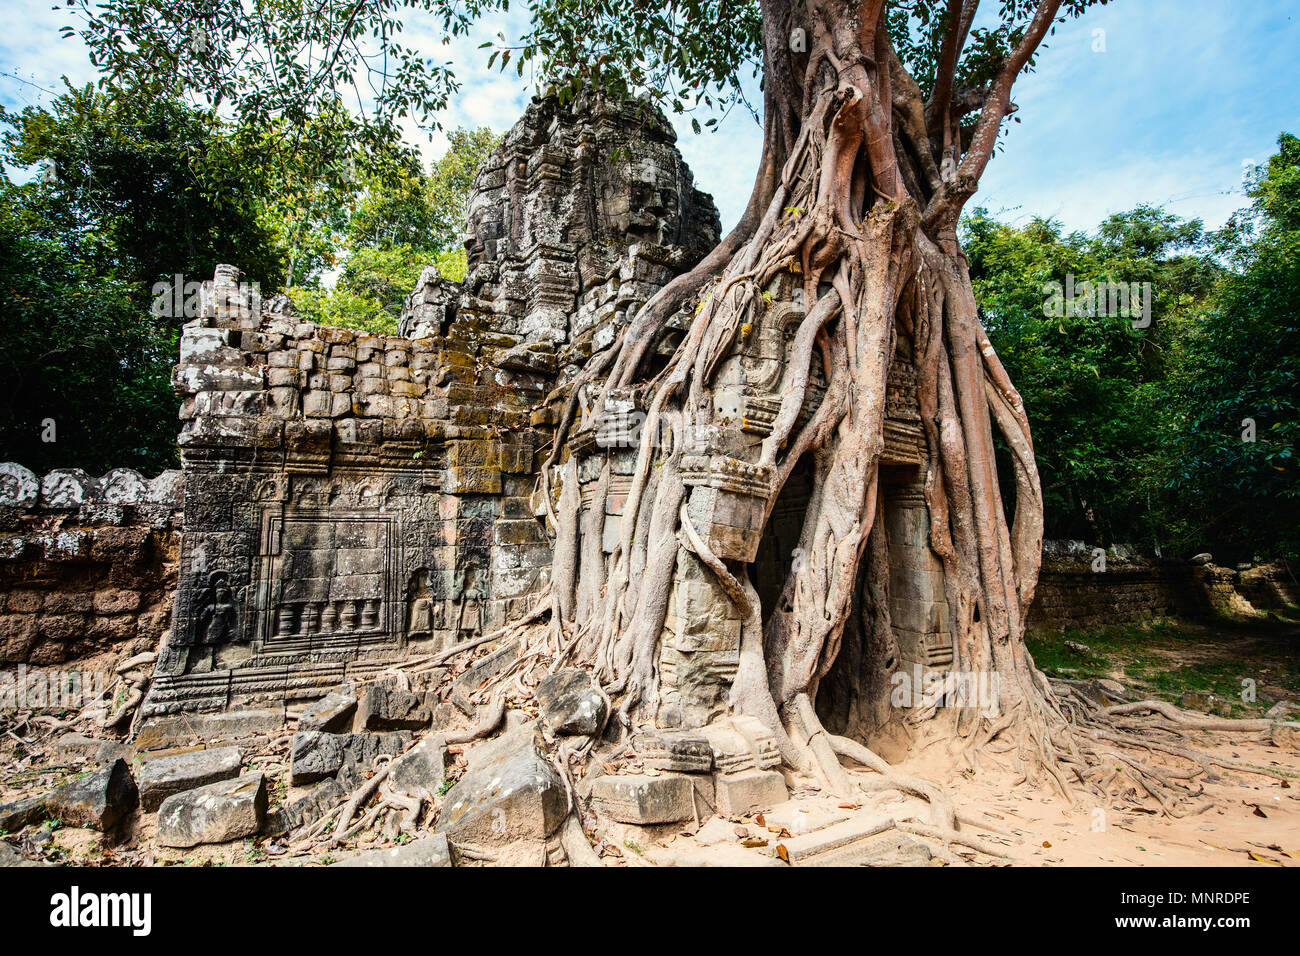 Ta Som jungle temple in Angkor Archeological area in Cambodia - Stock Image